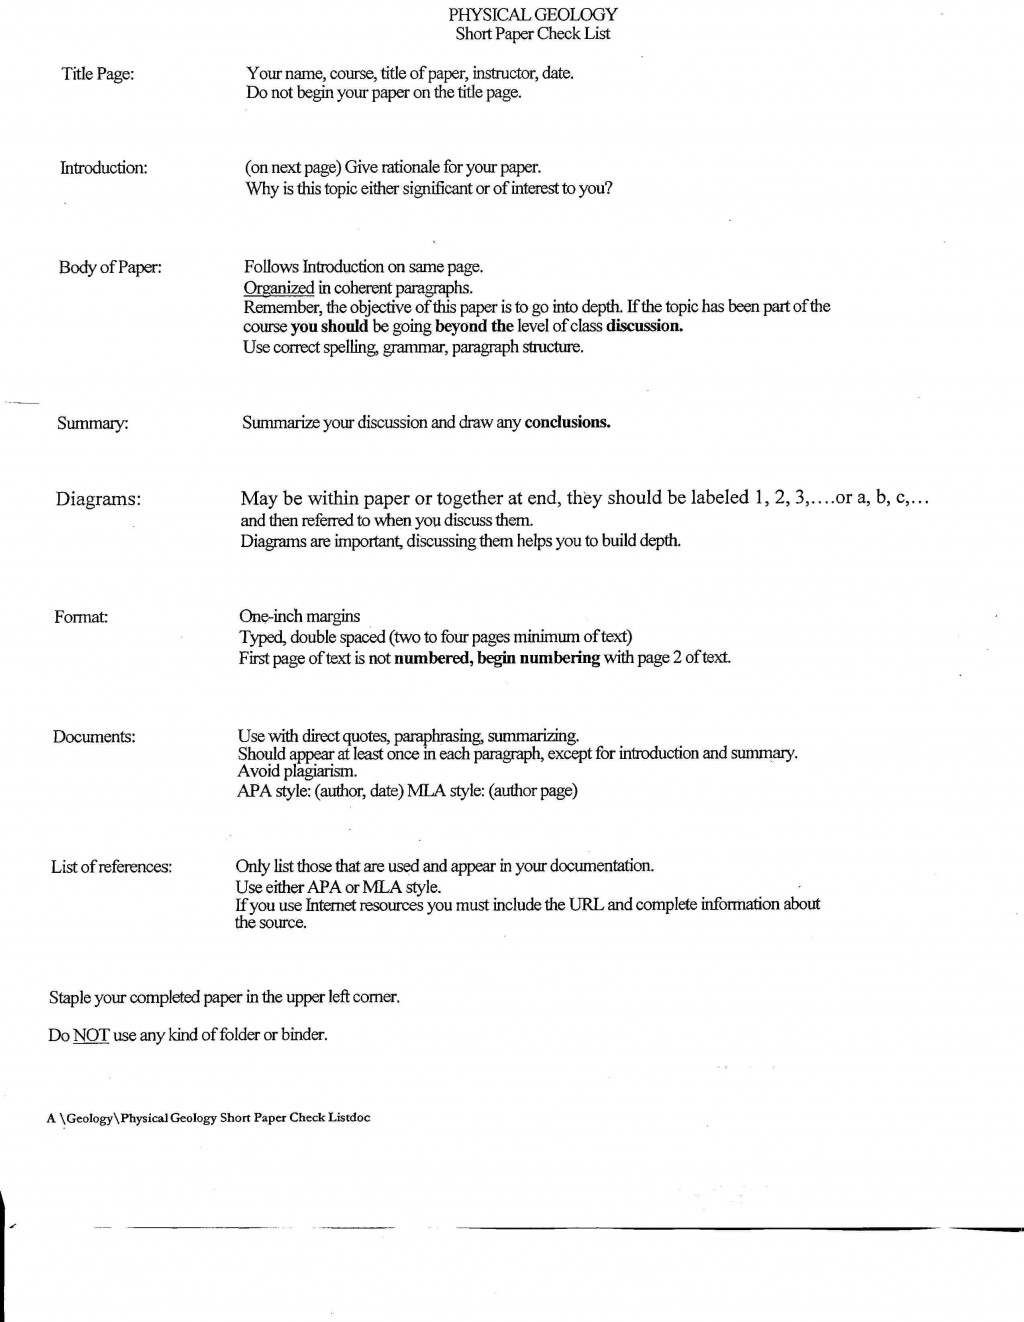 023 Short Checklist Topic For Research Unusual A Paper Topics In Developmental Psychology On Education Frankenstein Large